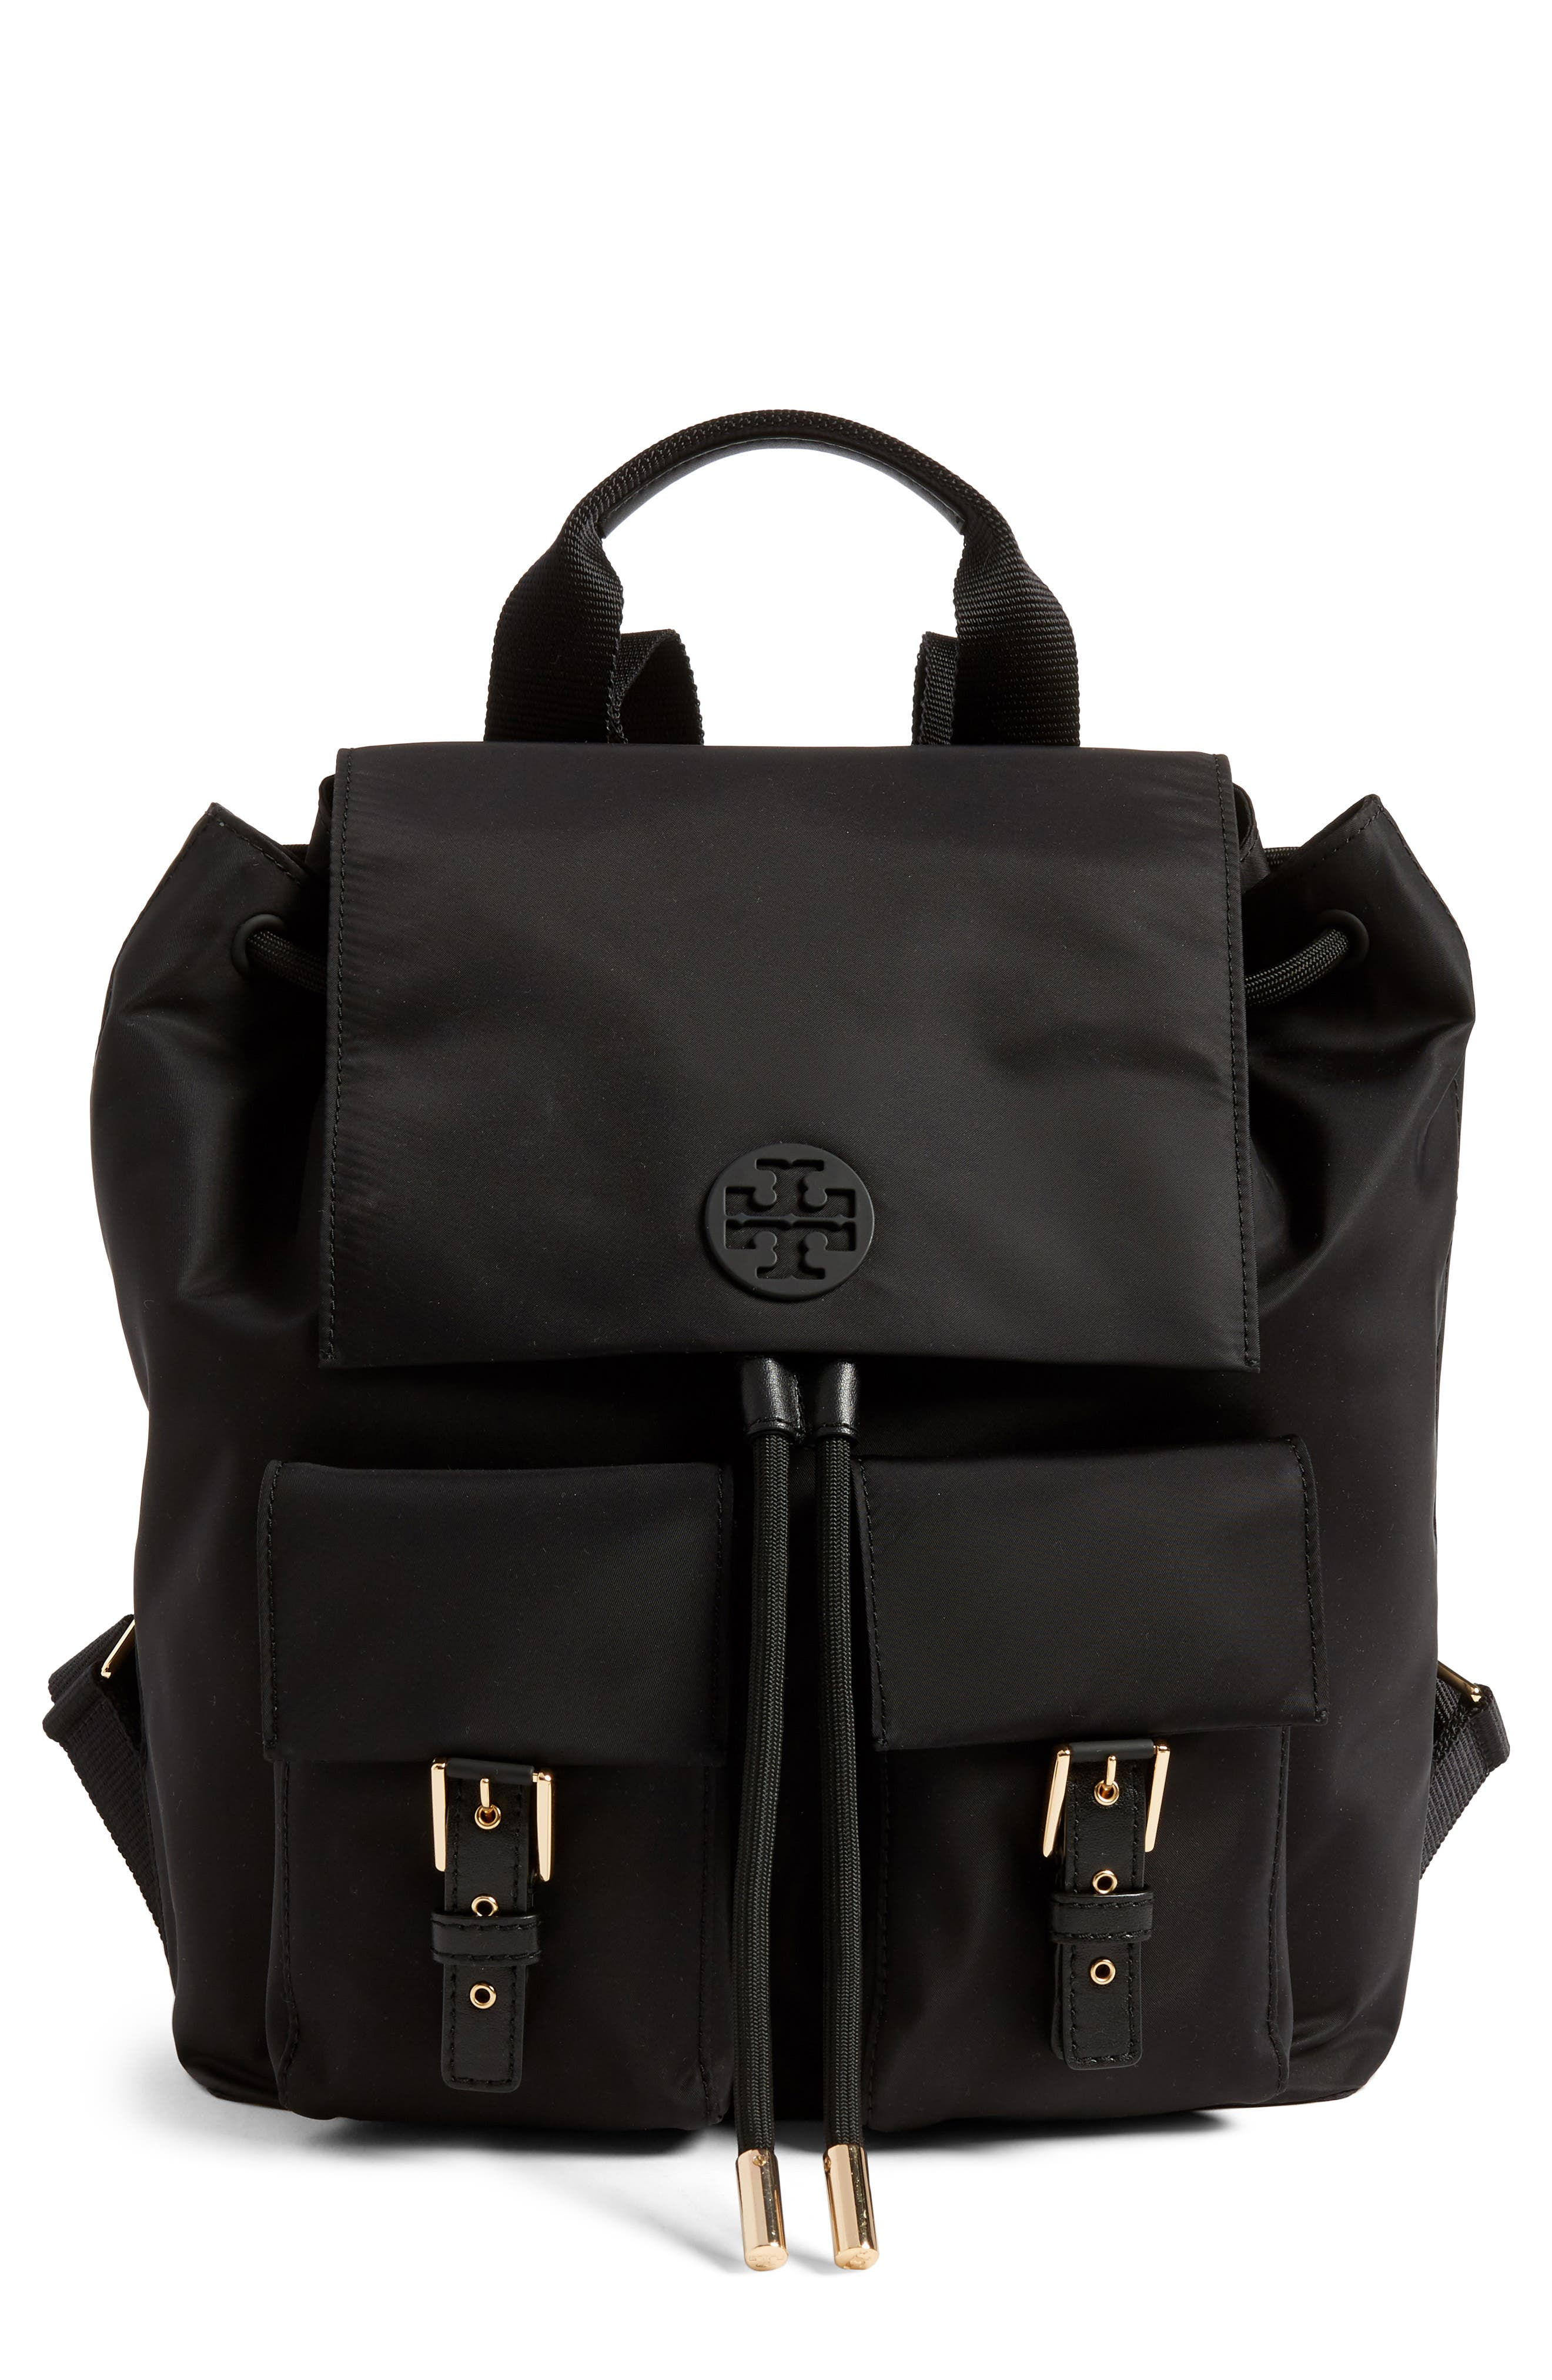 TORY BURCH Tilda Nylon Backpack, Main, color, BLACK